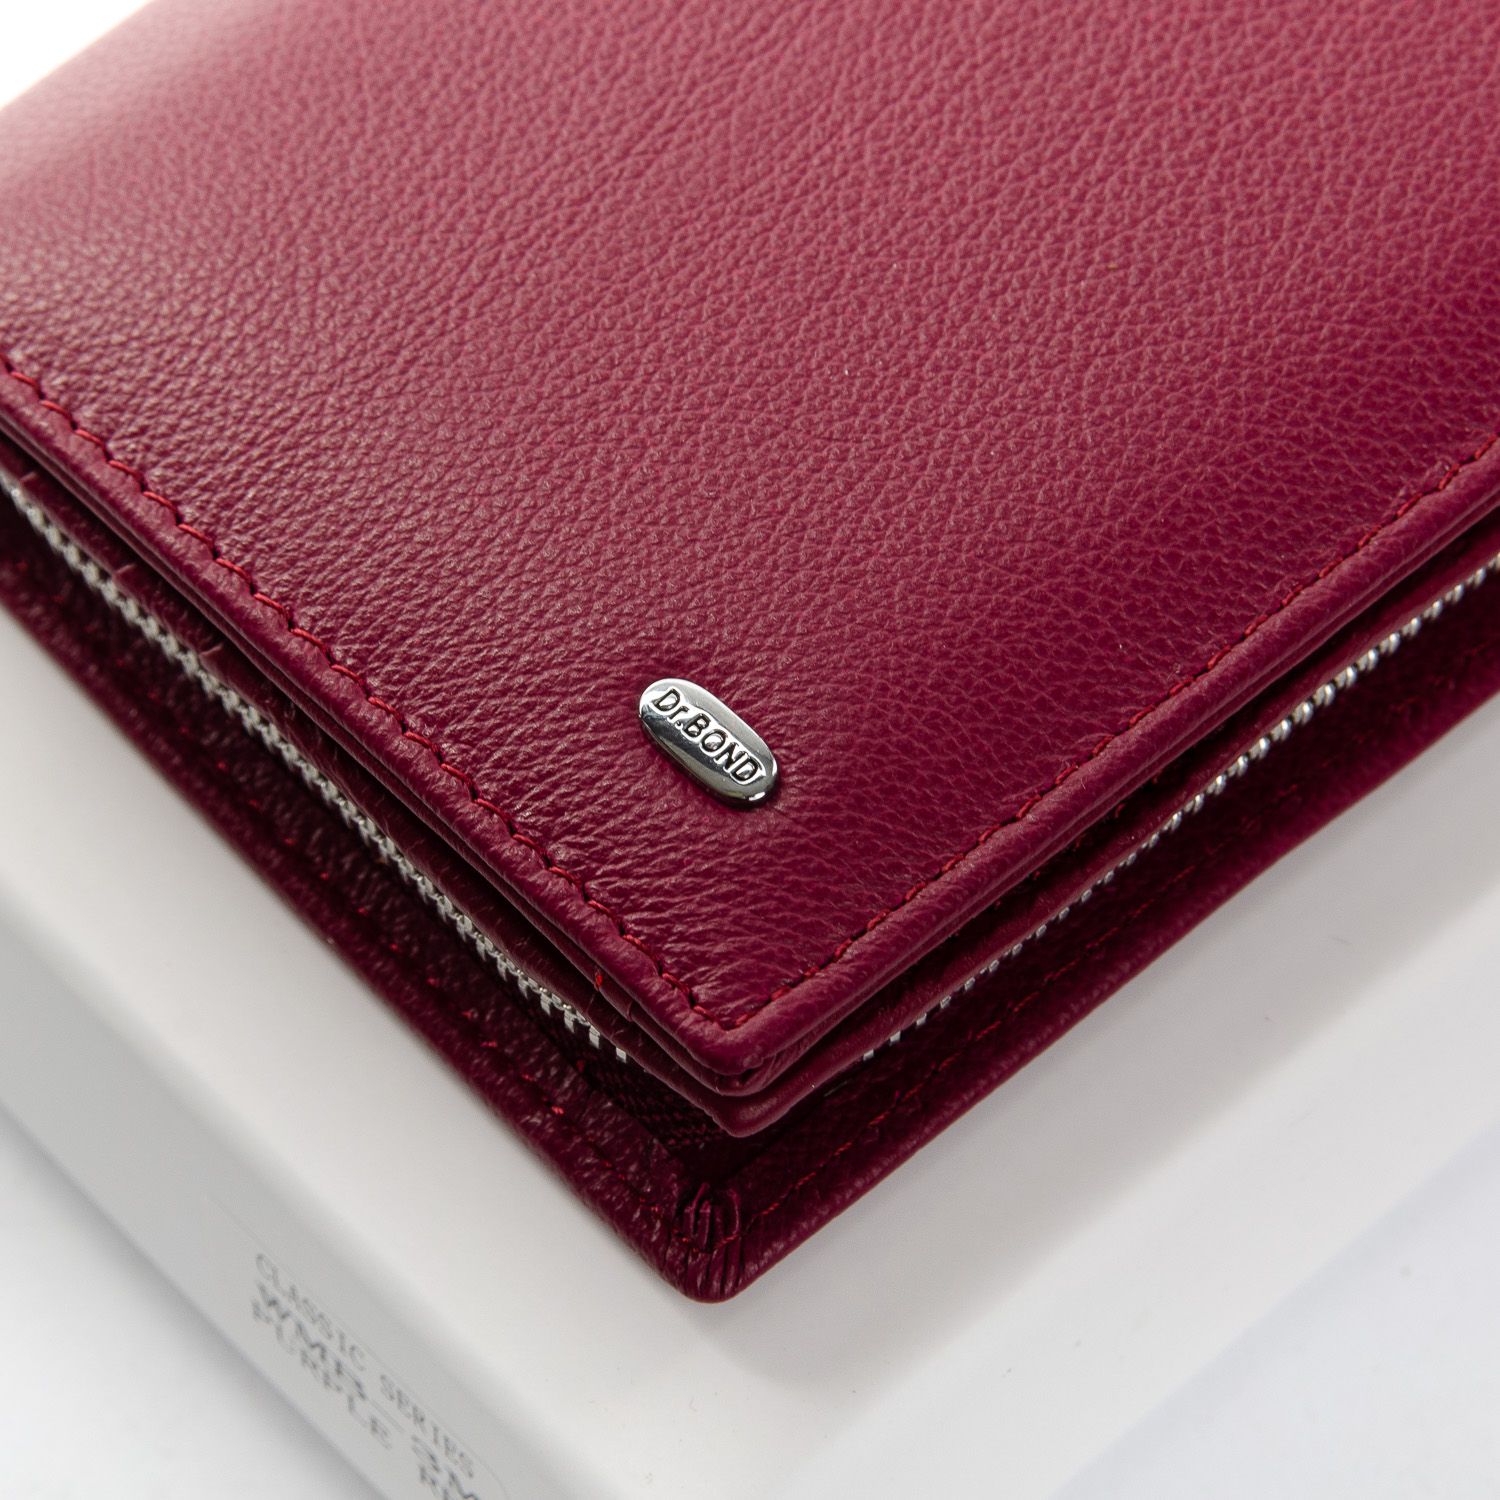 Кошелек Classic кожа DR. BOND WMB-3M plum-red - фото 3